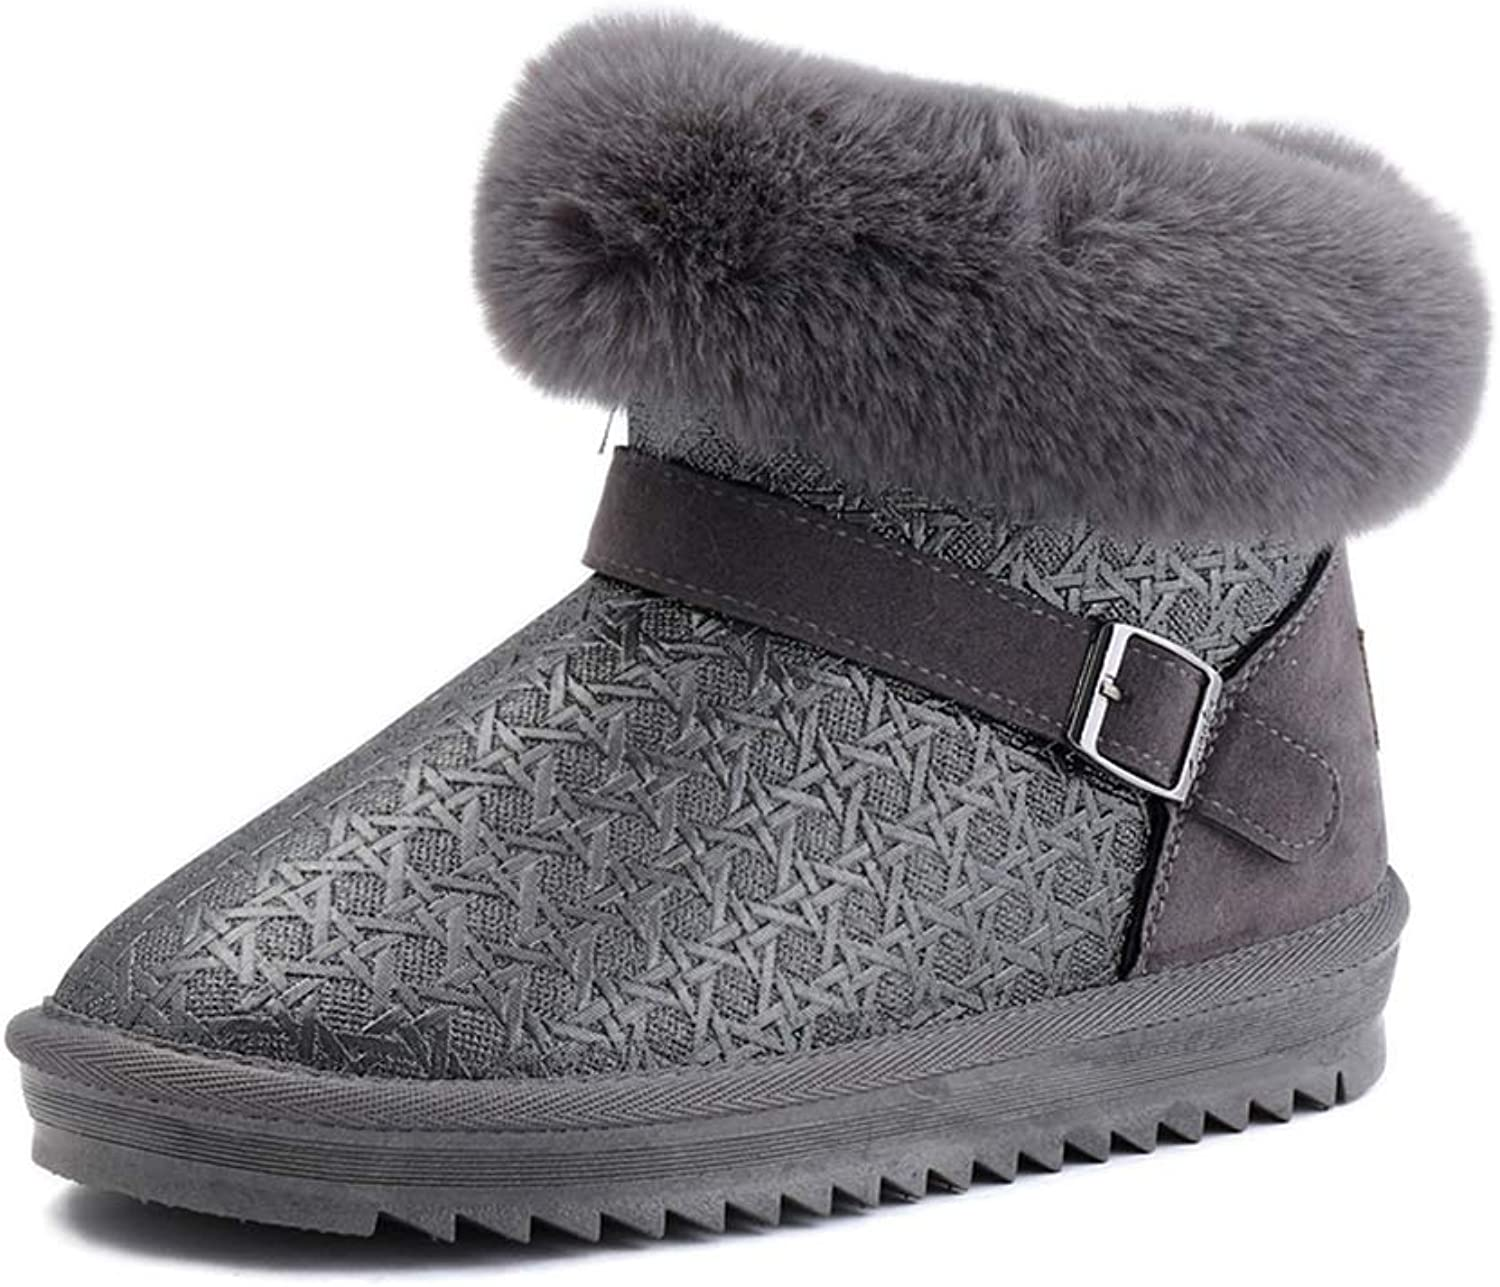 A-LING Women's Slip On Woven Pattern Short Booties Casual Flat Snow Boots